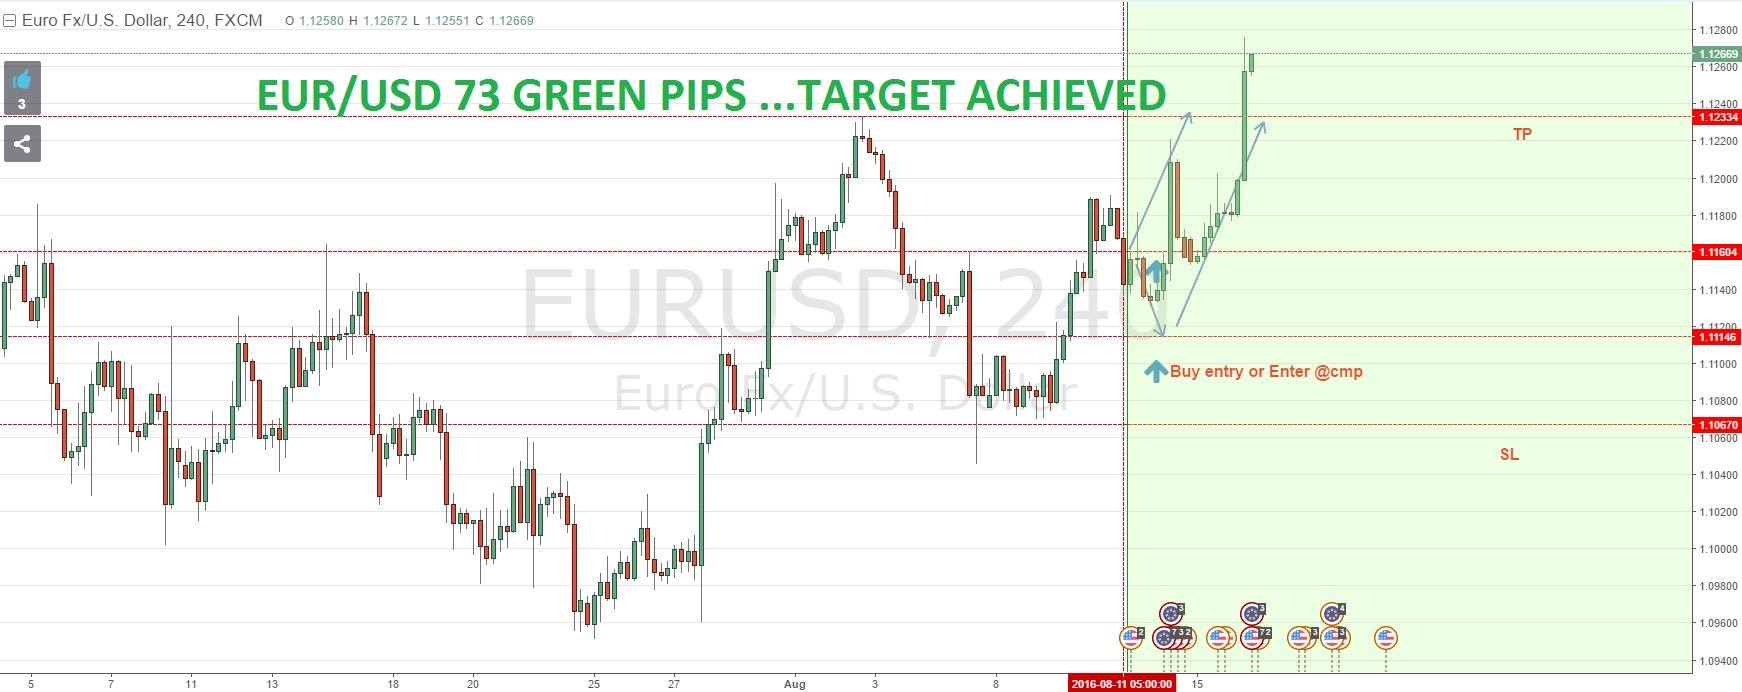 SURE SHOT SIGNAL RESULT: EUR/USD 73 GREEN PIPS …TARGET ACHIEVED